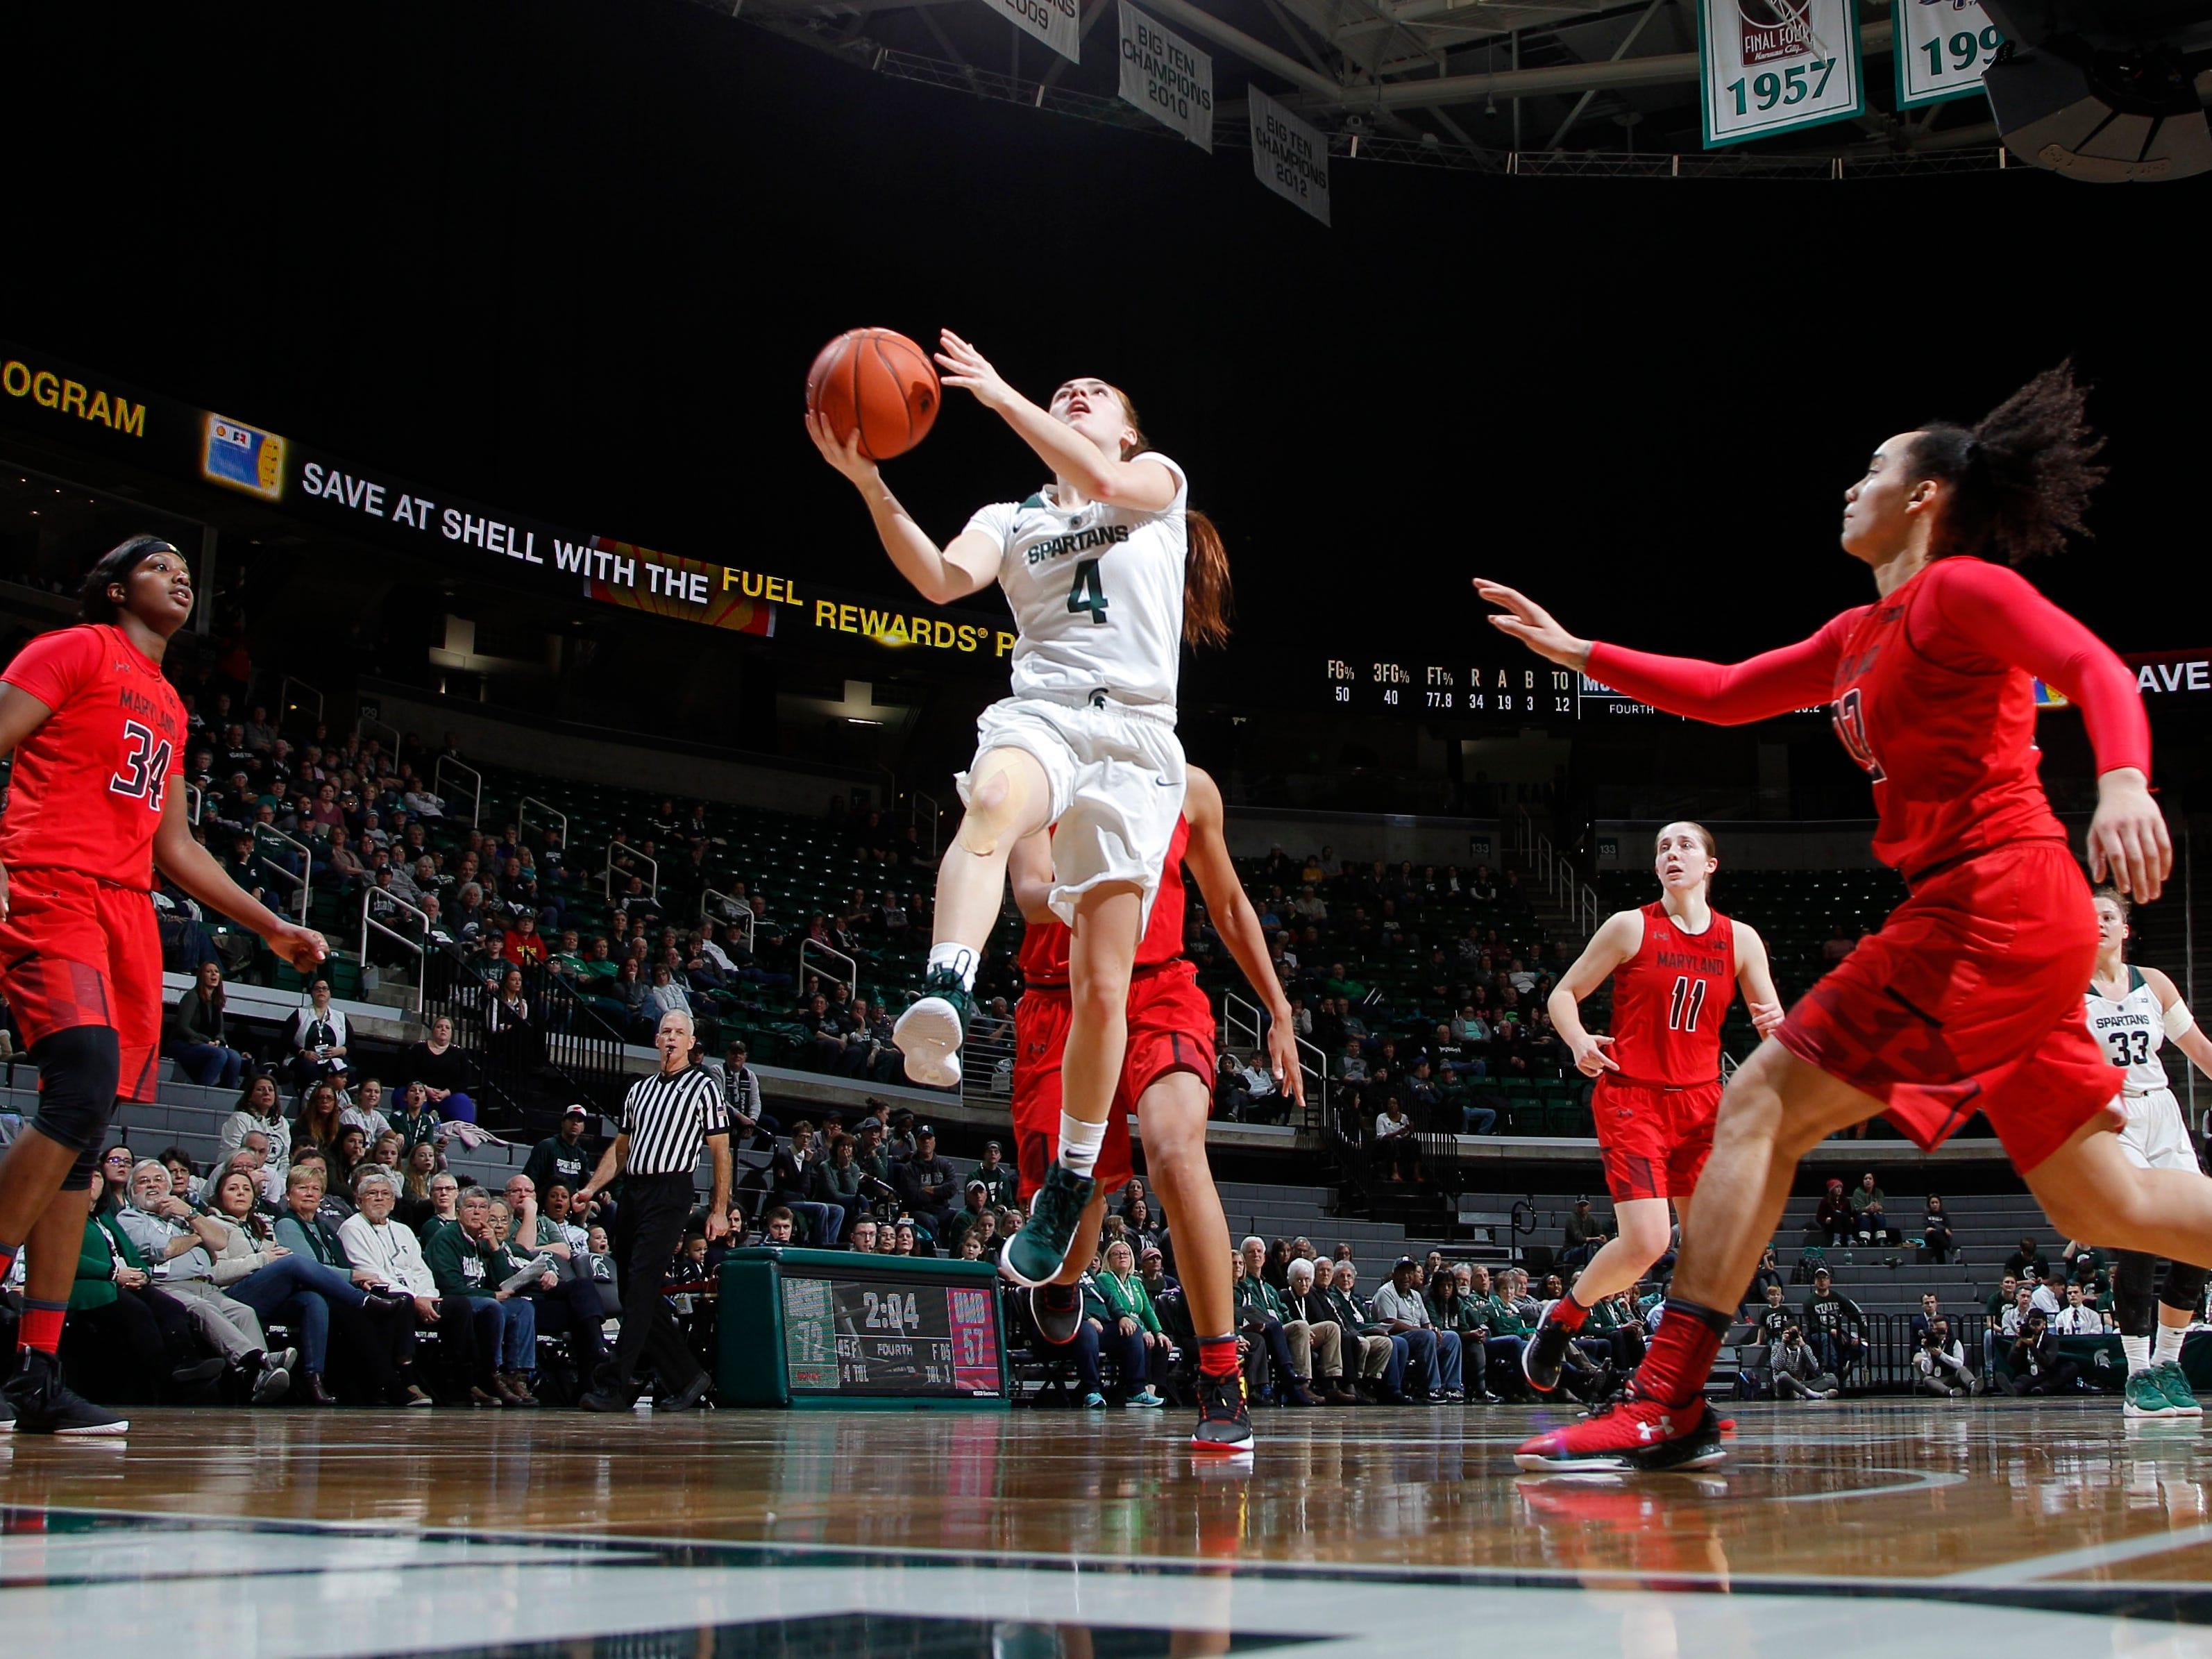 Michigan State's Taryn McCutcheon (4) goes up for a layup against Maryland's Brianna Fraser, left, and Blair Watson, right, Thursday, Jan. 17, 2019, in East Lansing, Mich.